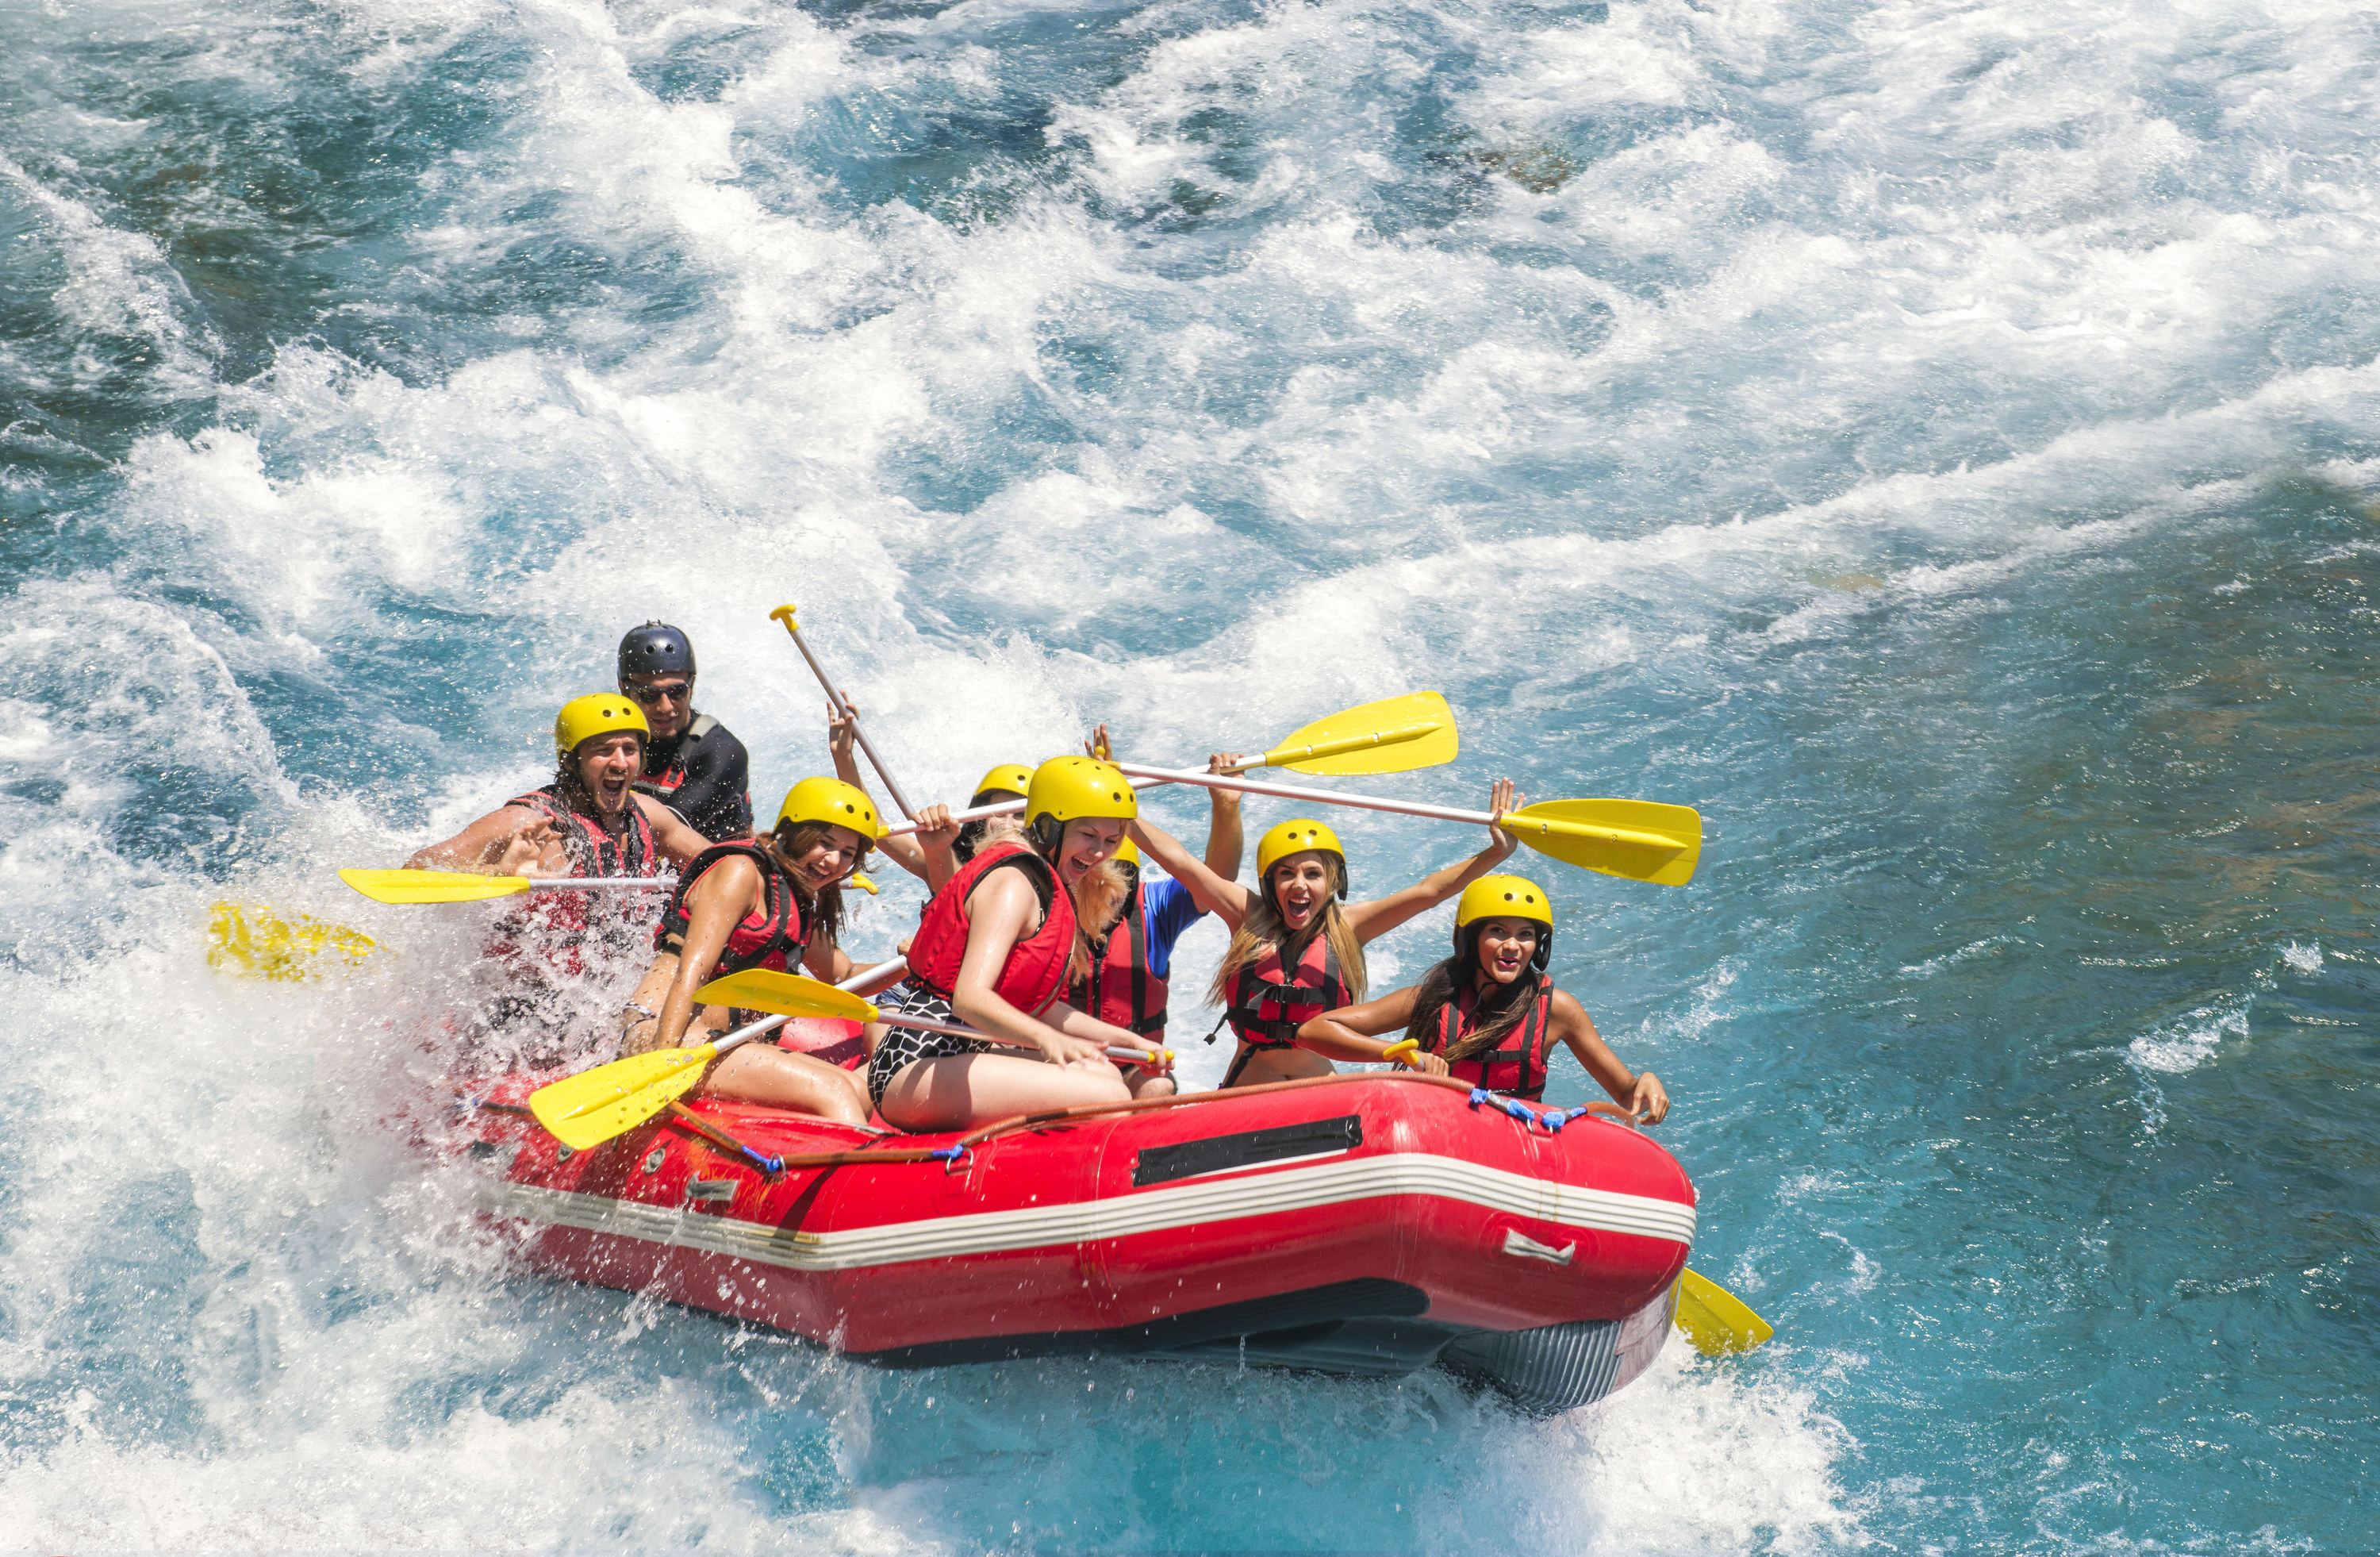 A group of friends white water rafting; they smile as they hurdle down a thunderous part of the river.